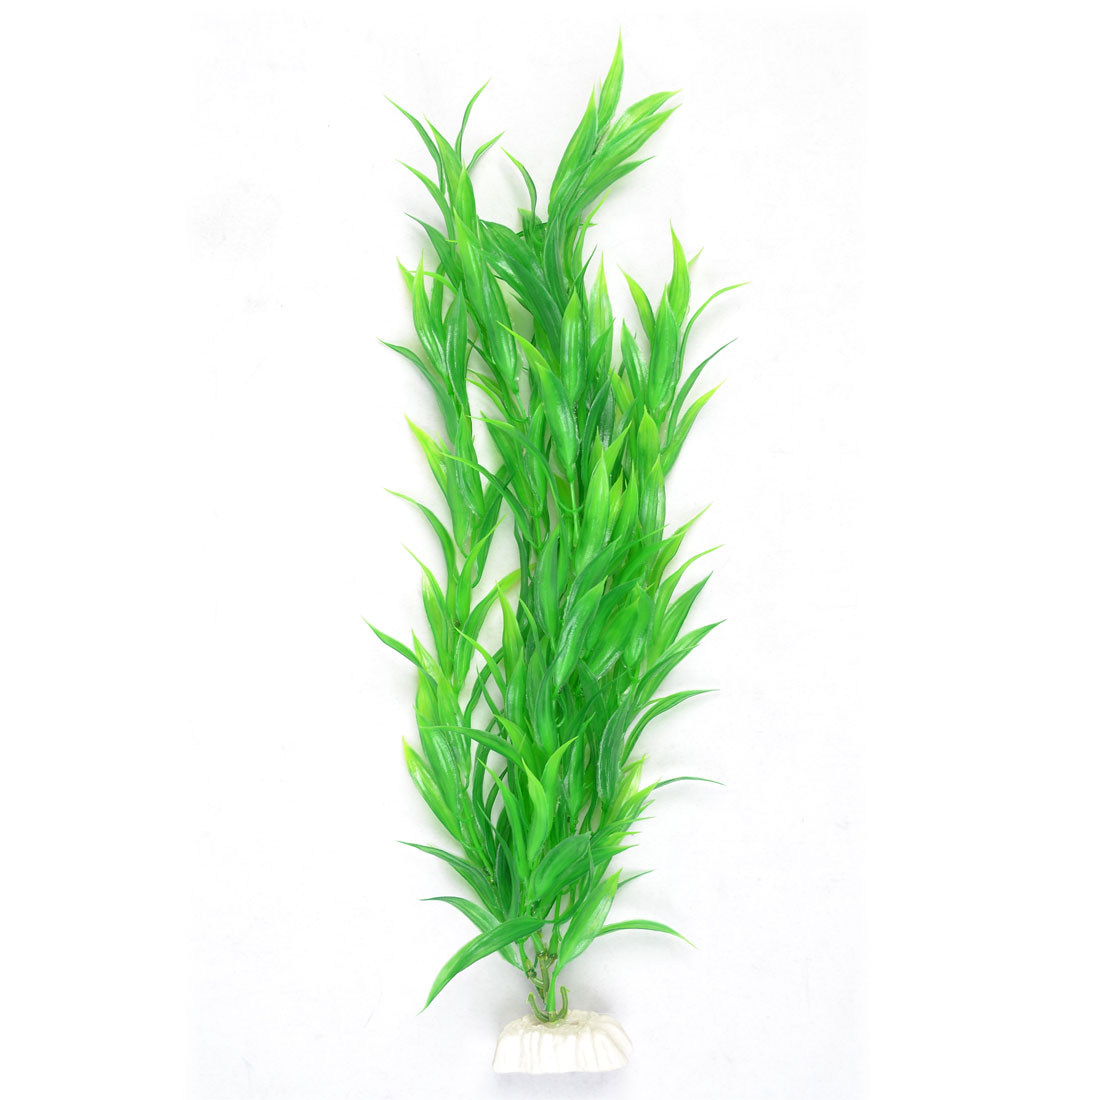 Decorative-16-1-Height-Green-Plastic-Aquatic-Plant-for-Fish-Tank-Aquariums